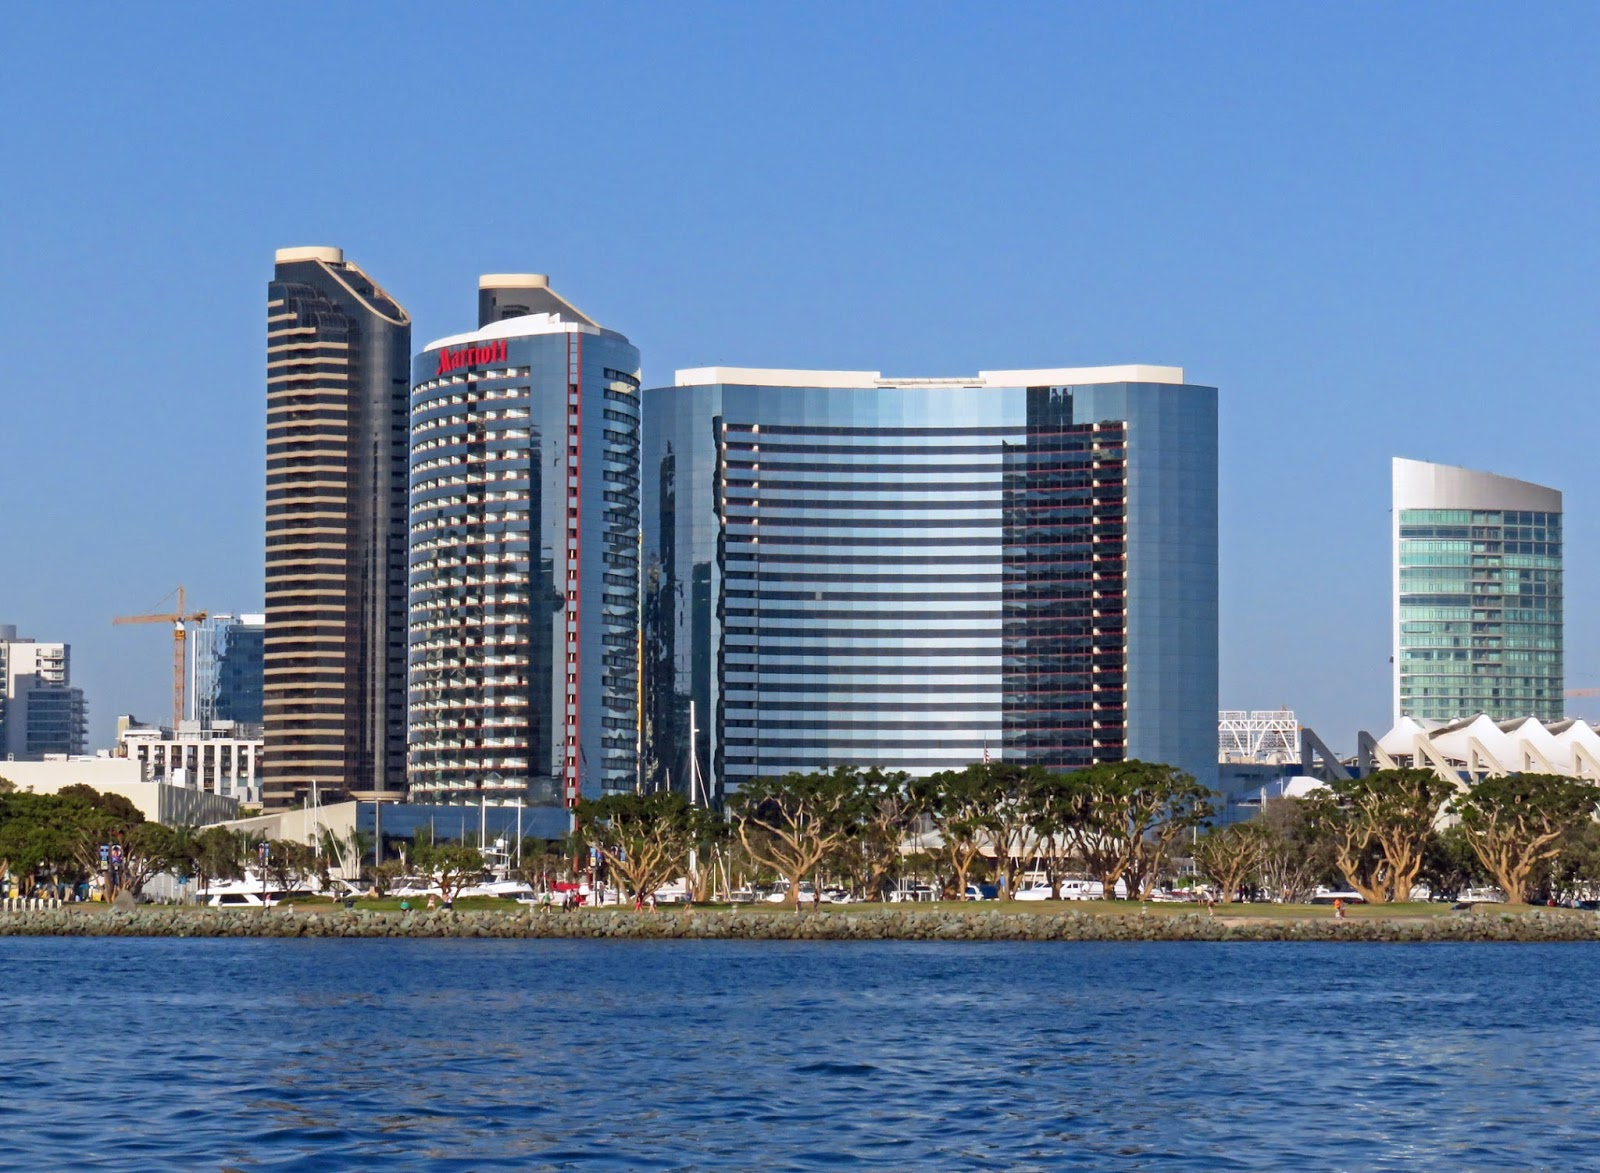 Marriott Marquis San Diego Marina: Waterfront Business Hotel or ...